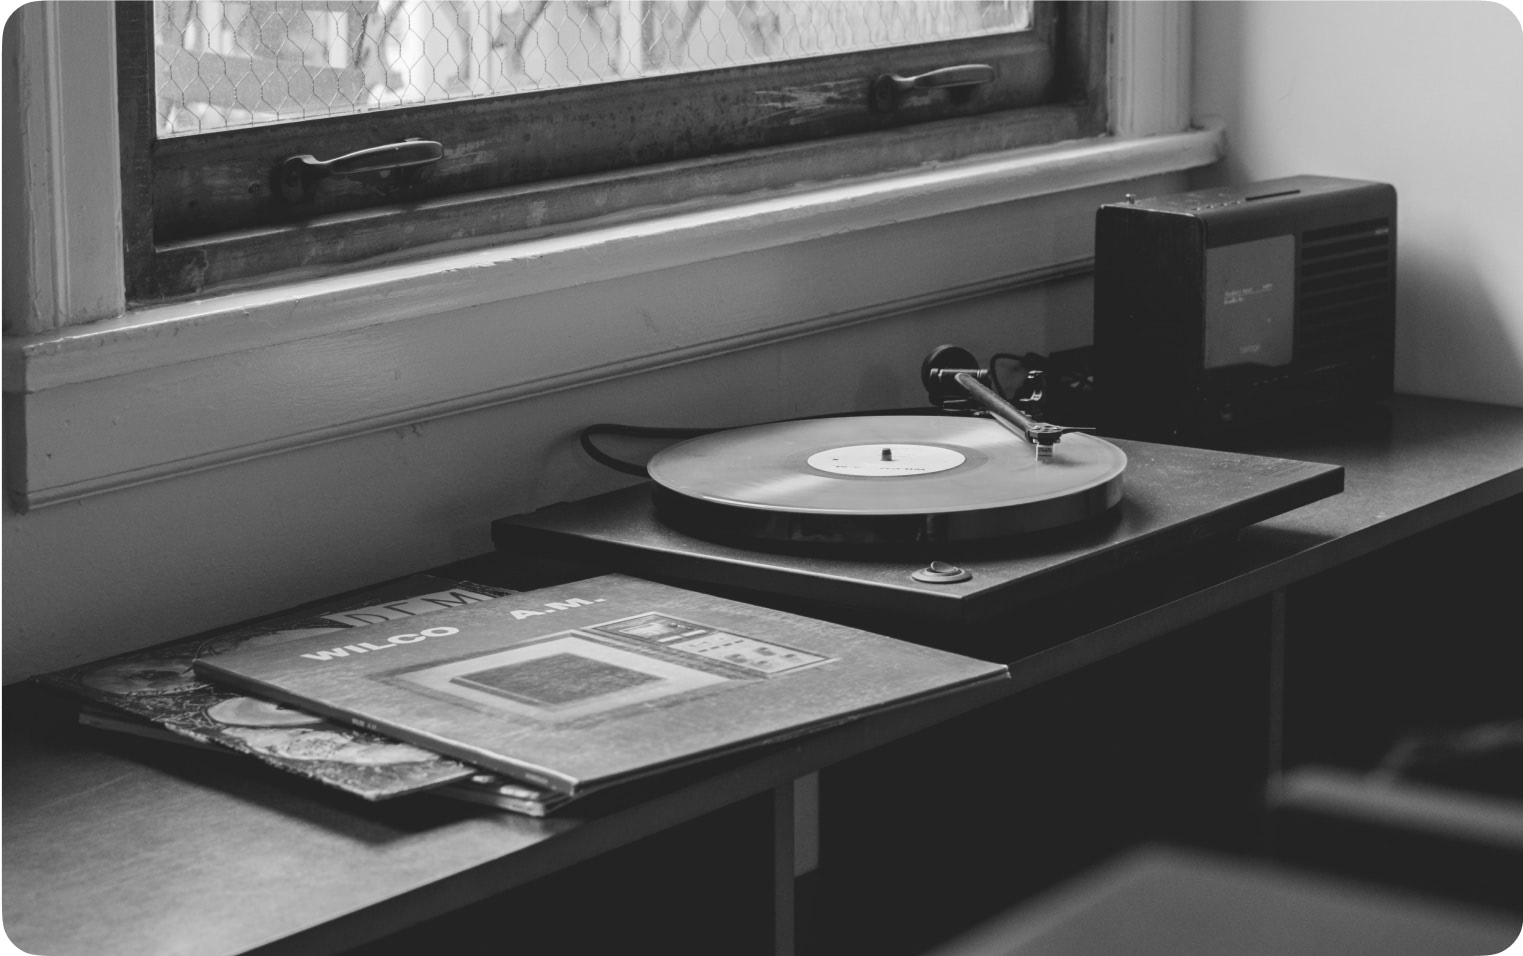 Record player sitting in front of open window